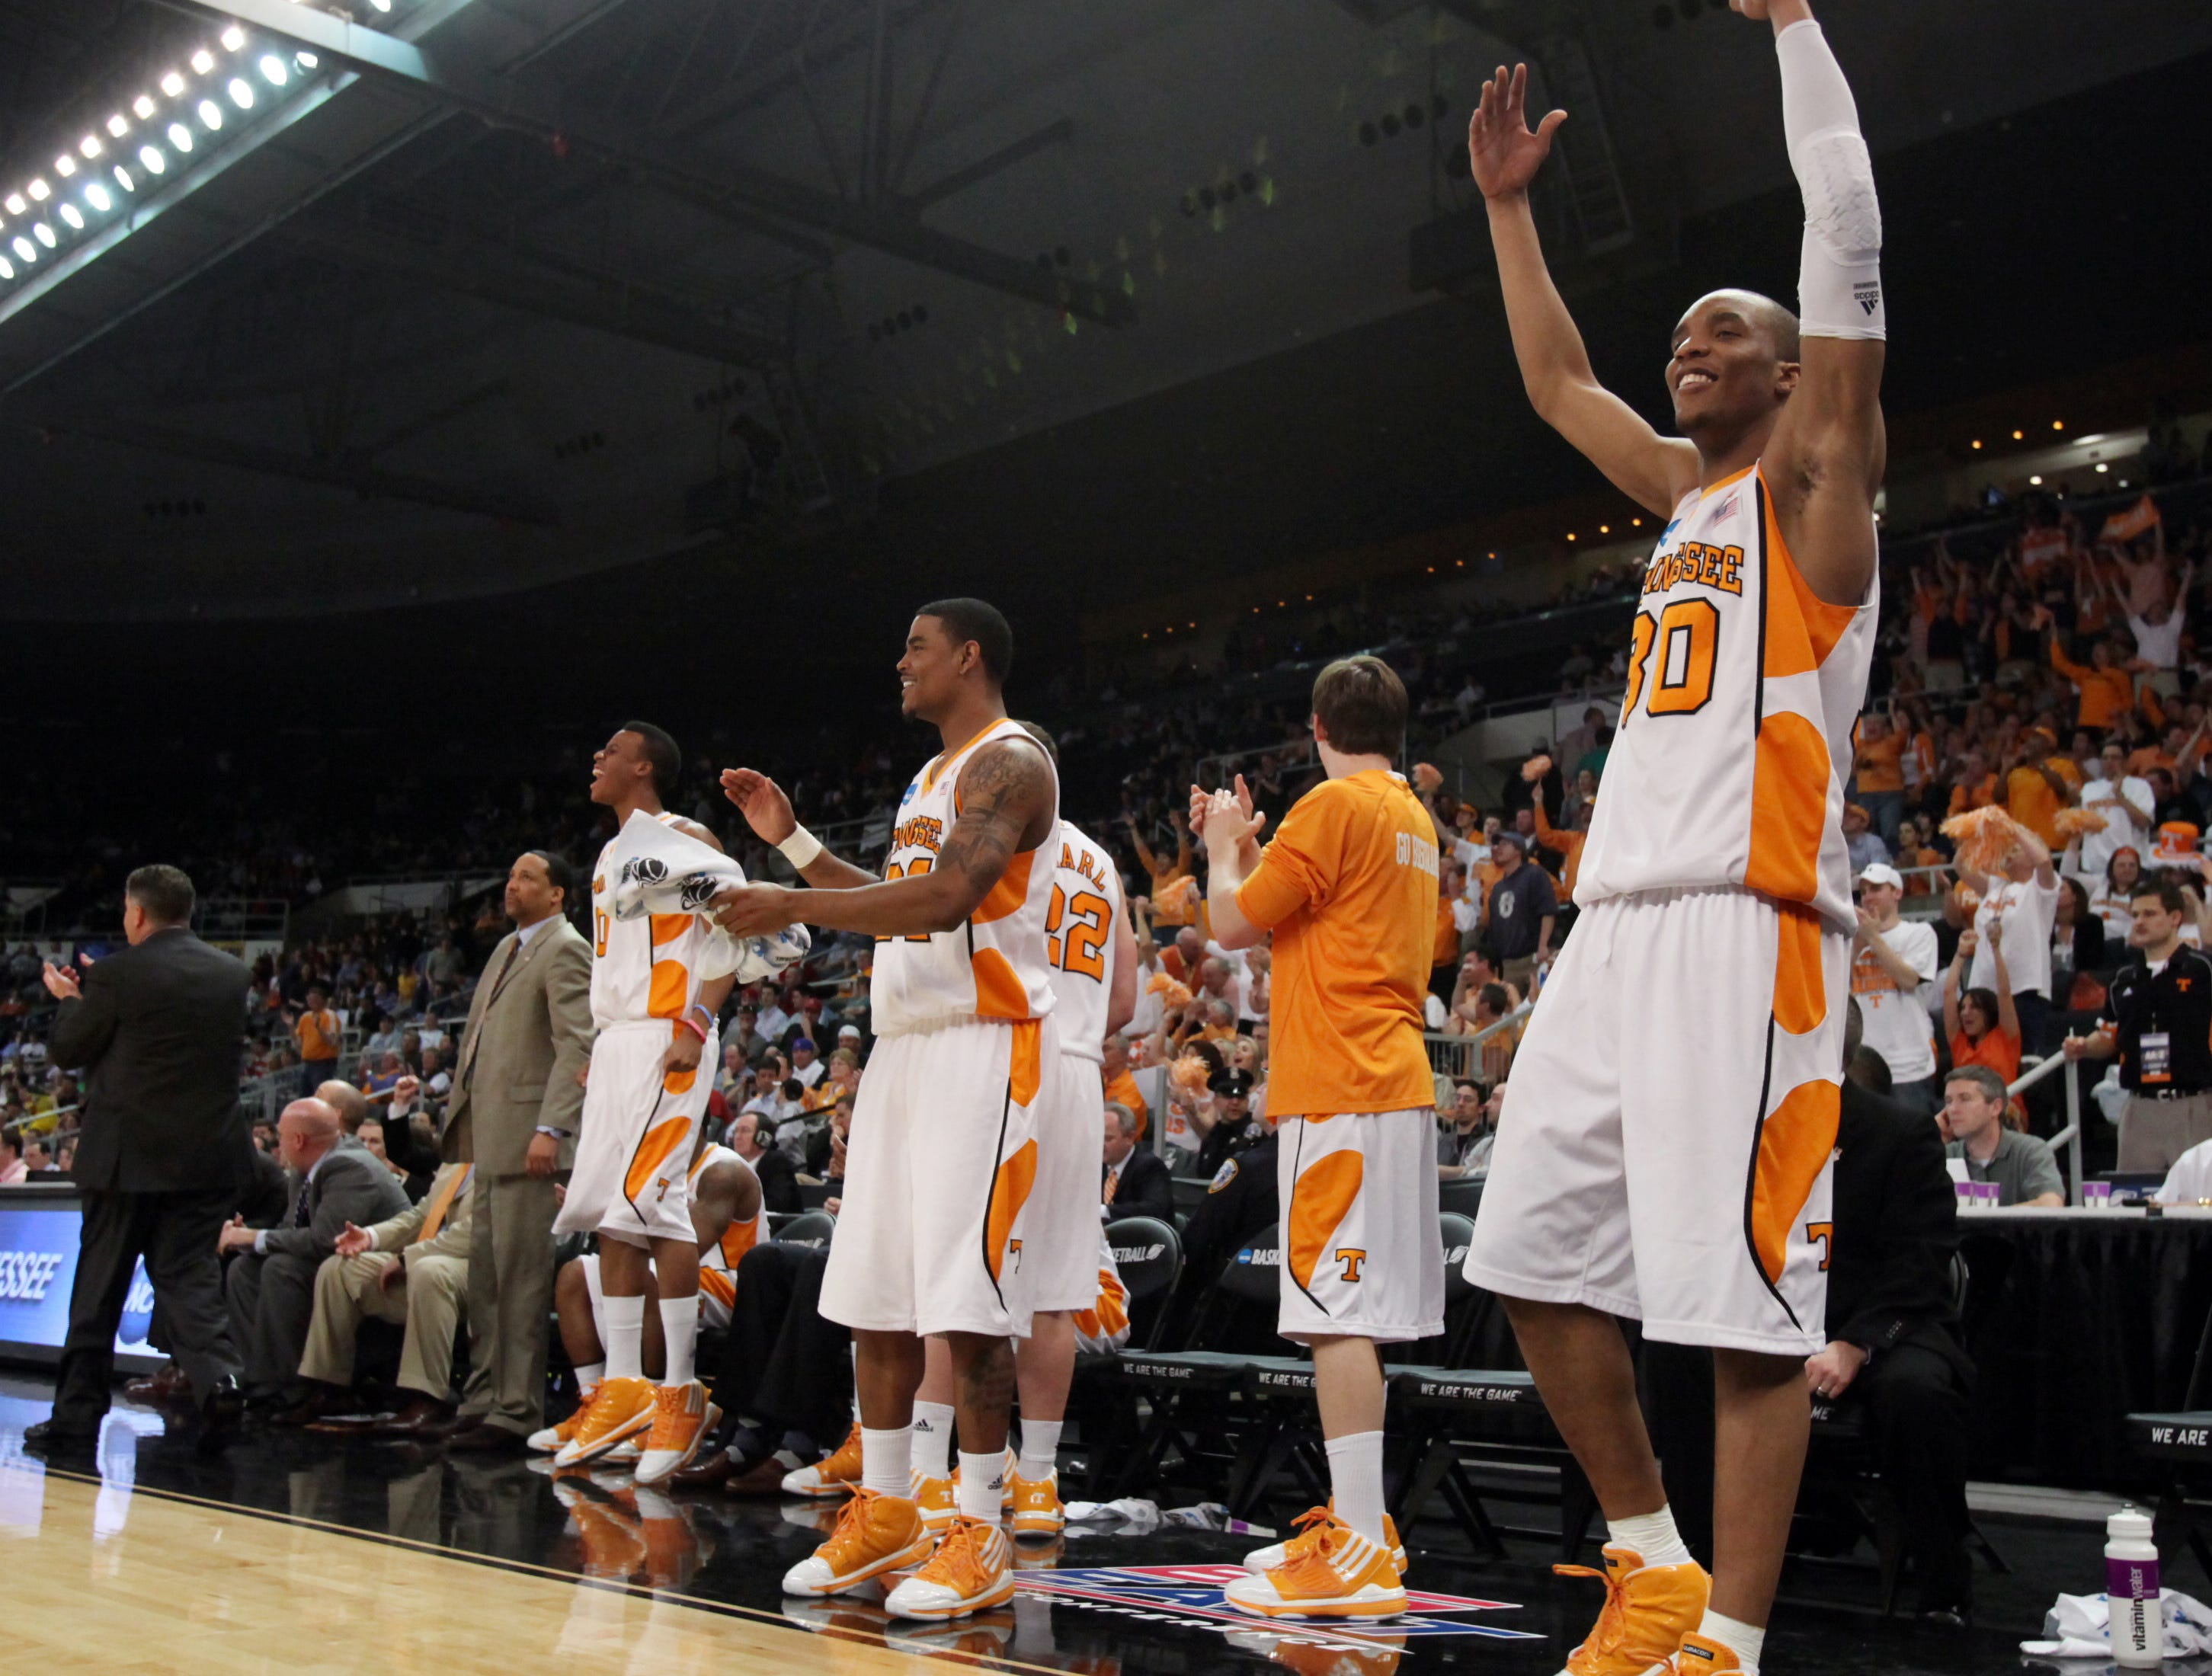 Tennessee's J.P. Prince celebrates as the Vols close out a 83-68 win over the Ohio Bobcats during the second round of the NCAA tournament in Providence, R.I. Saturday, Mar. 20, 2010.